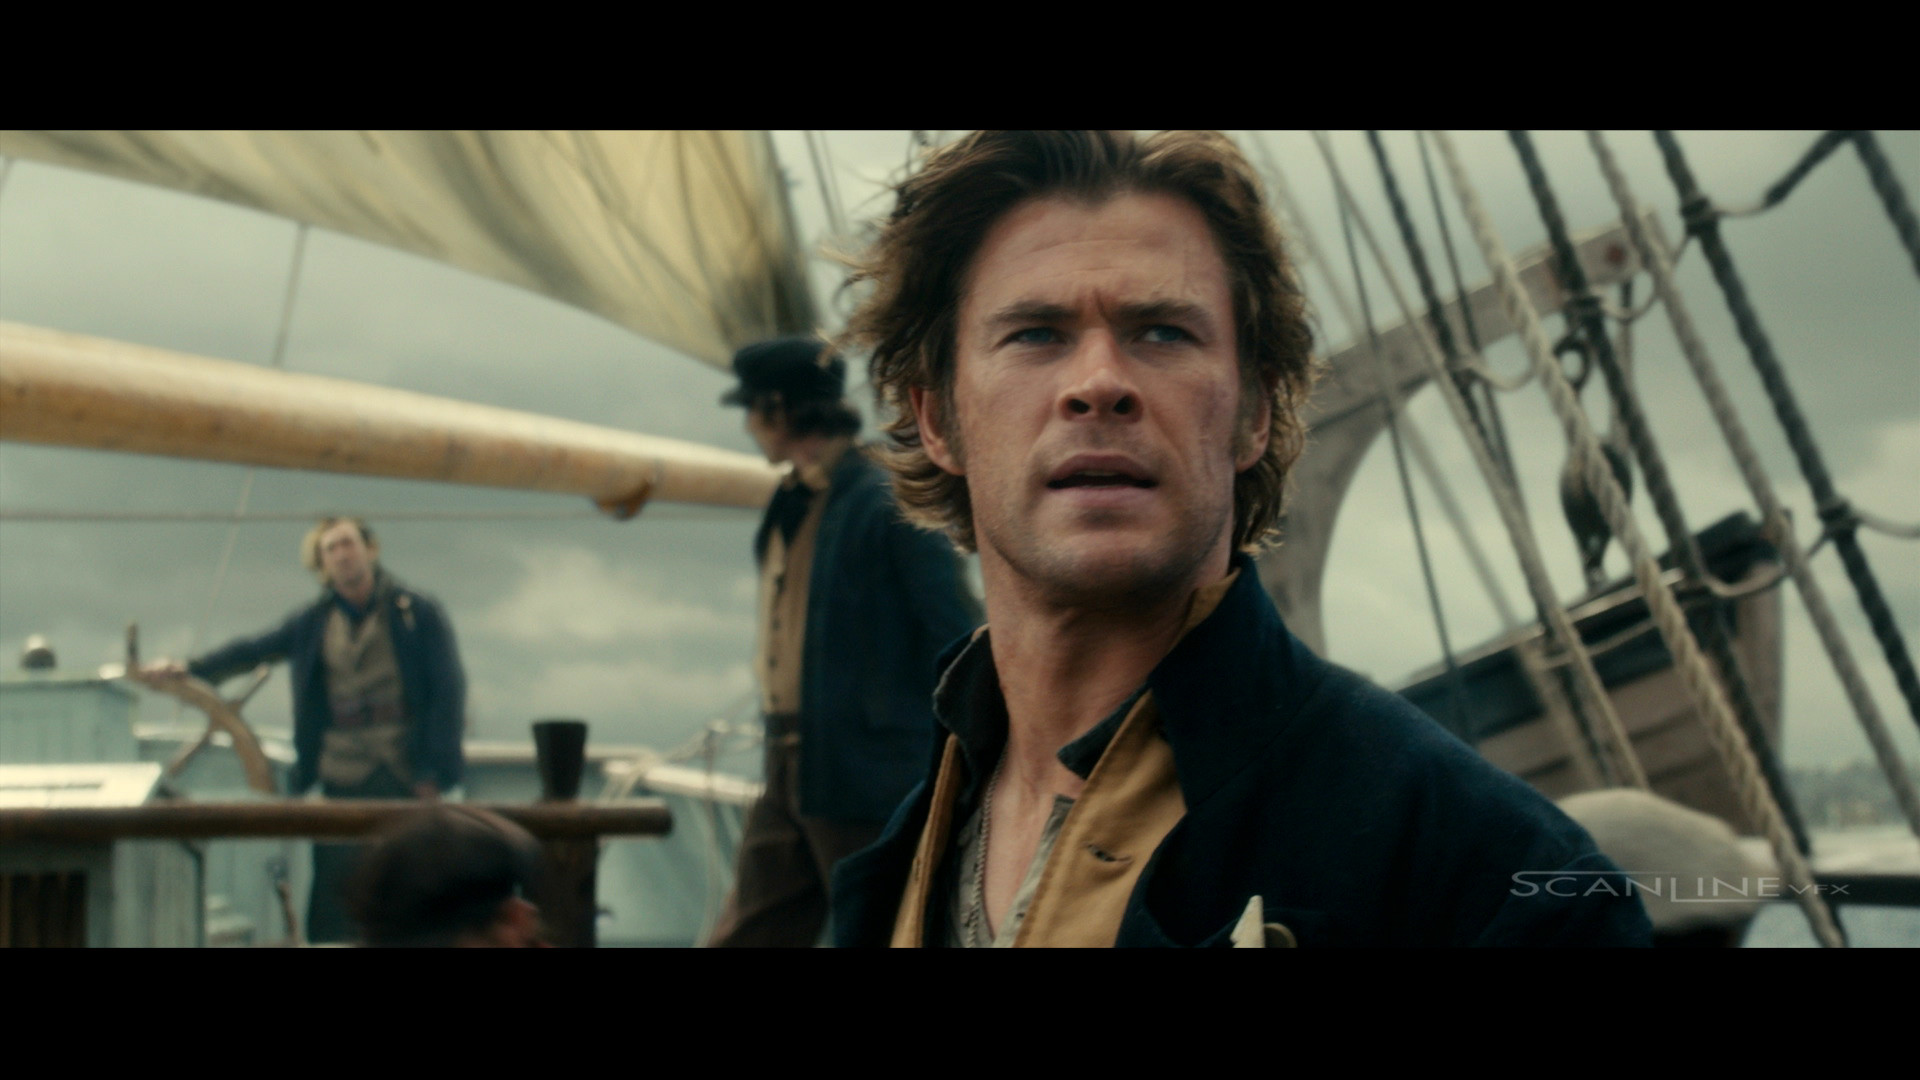 Compositing and integration work for In the Heart of the Sea - Work done at Scanline VFX with a team of 3D artists. Software used: Nuke.